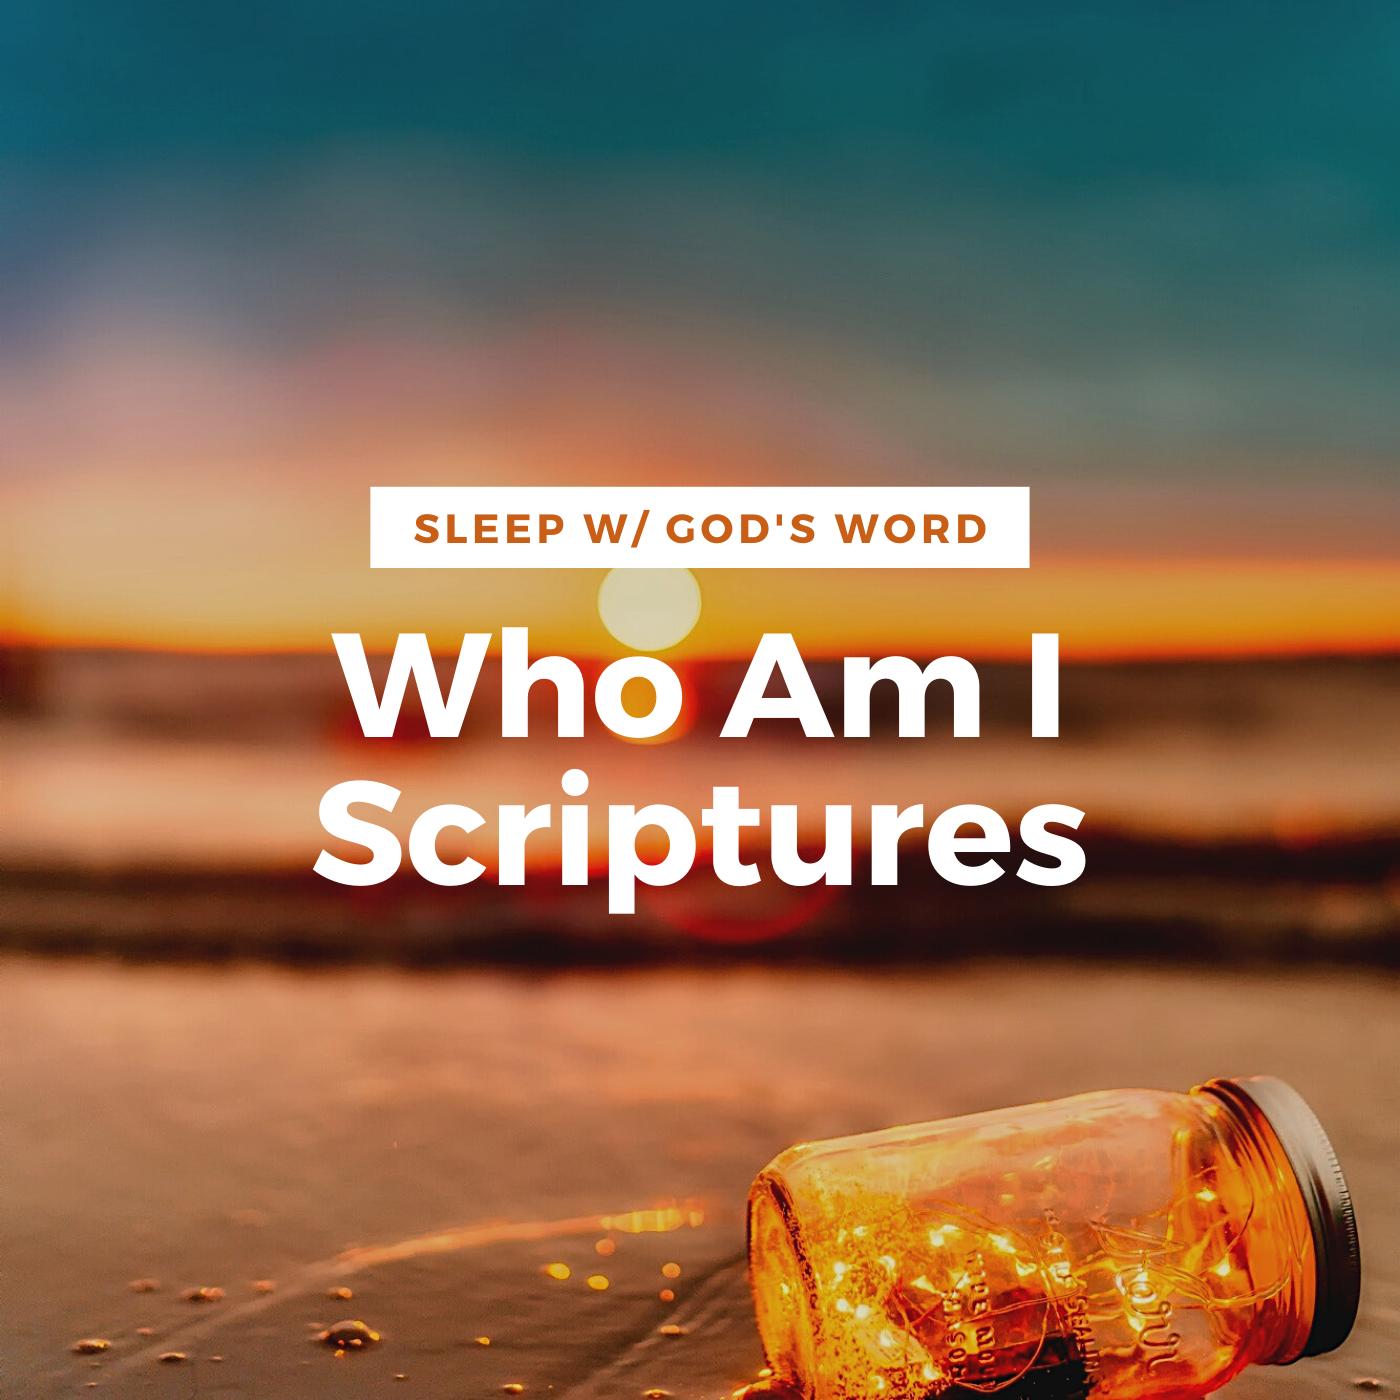 My True Identity Scriptures - Renew Your Mind While You Sleep